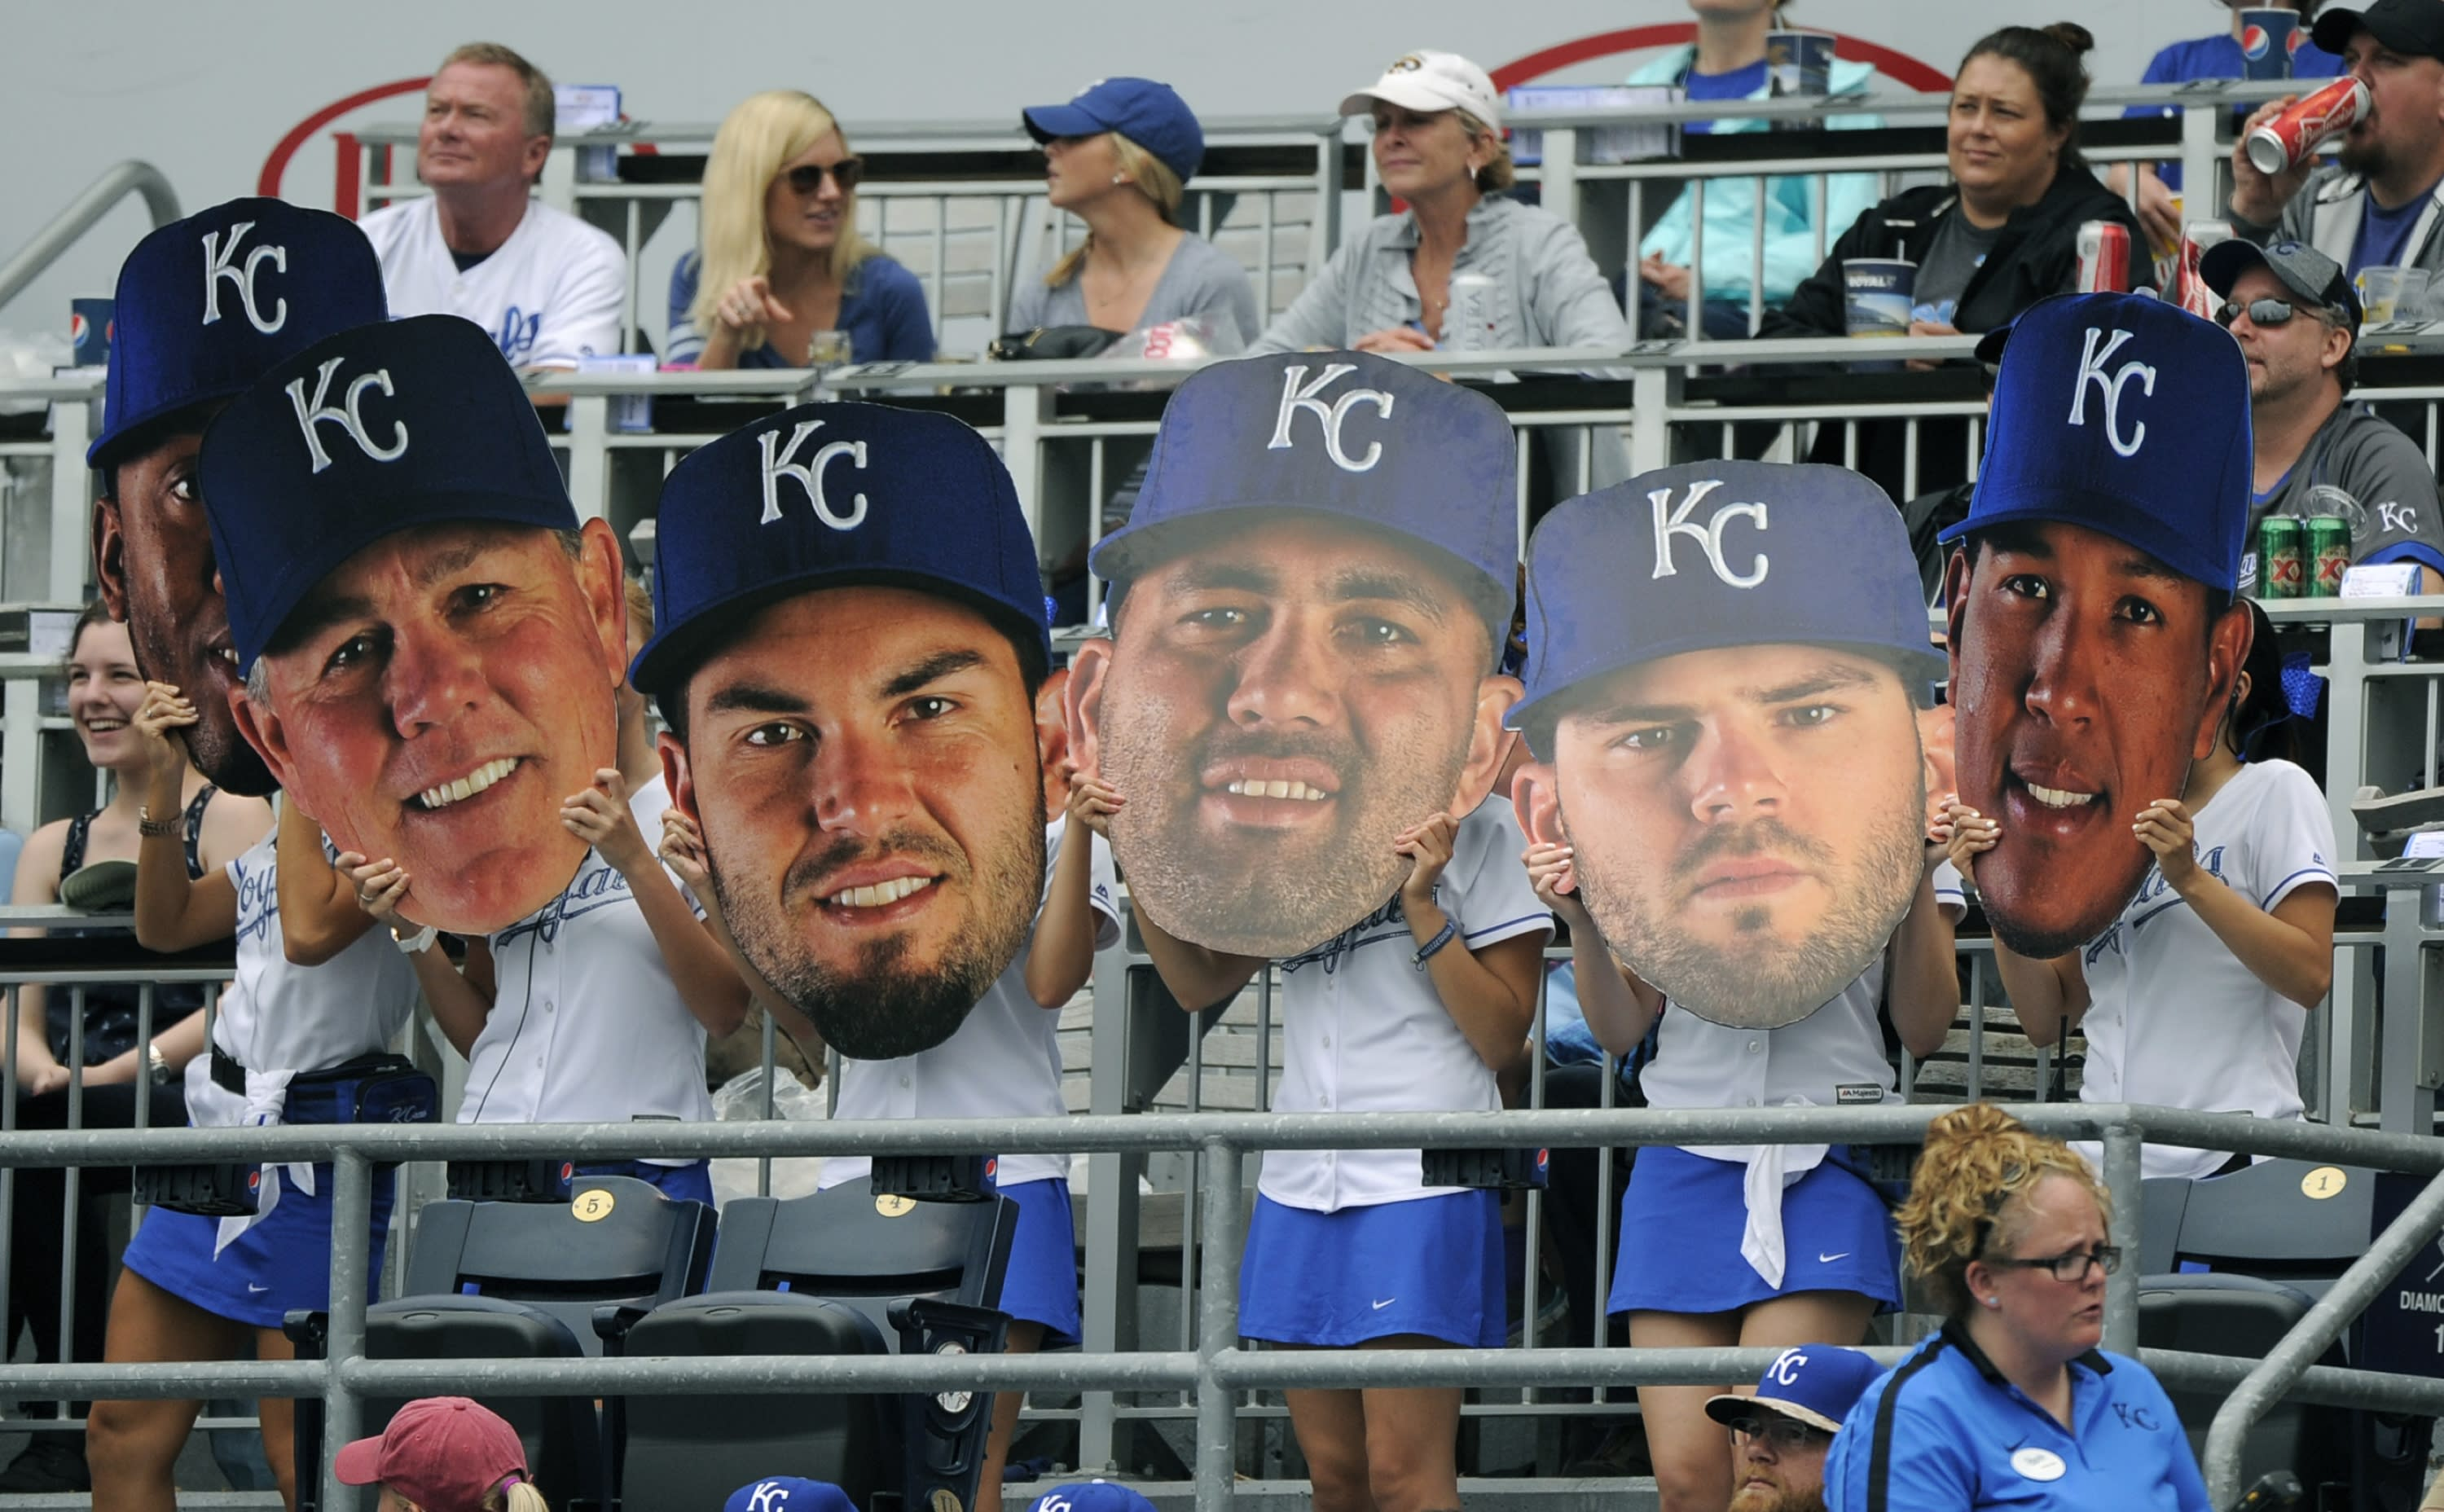 The first batch of All-Star vote tallies are out and the Royals are dominating